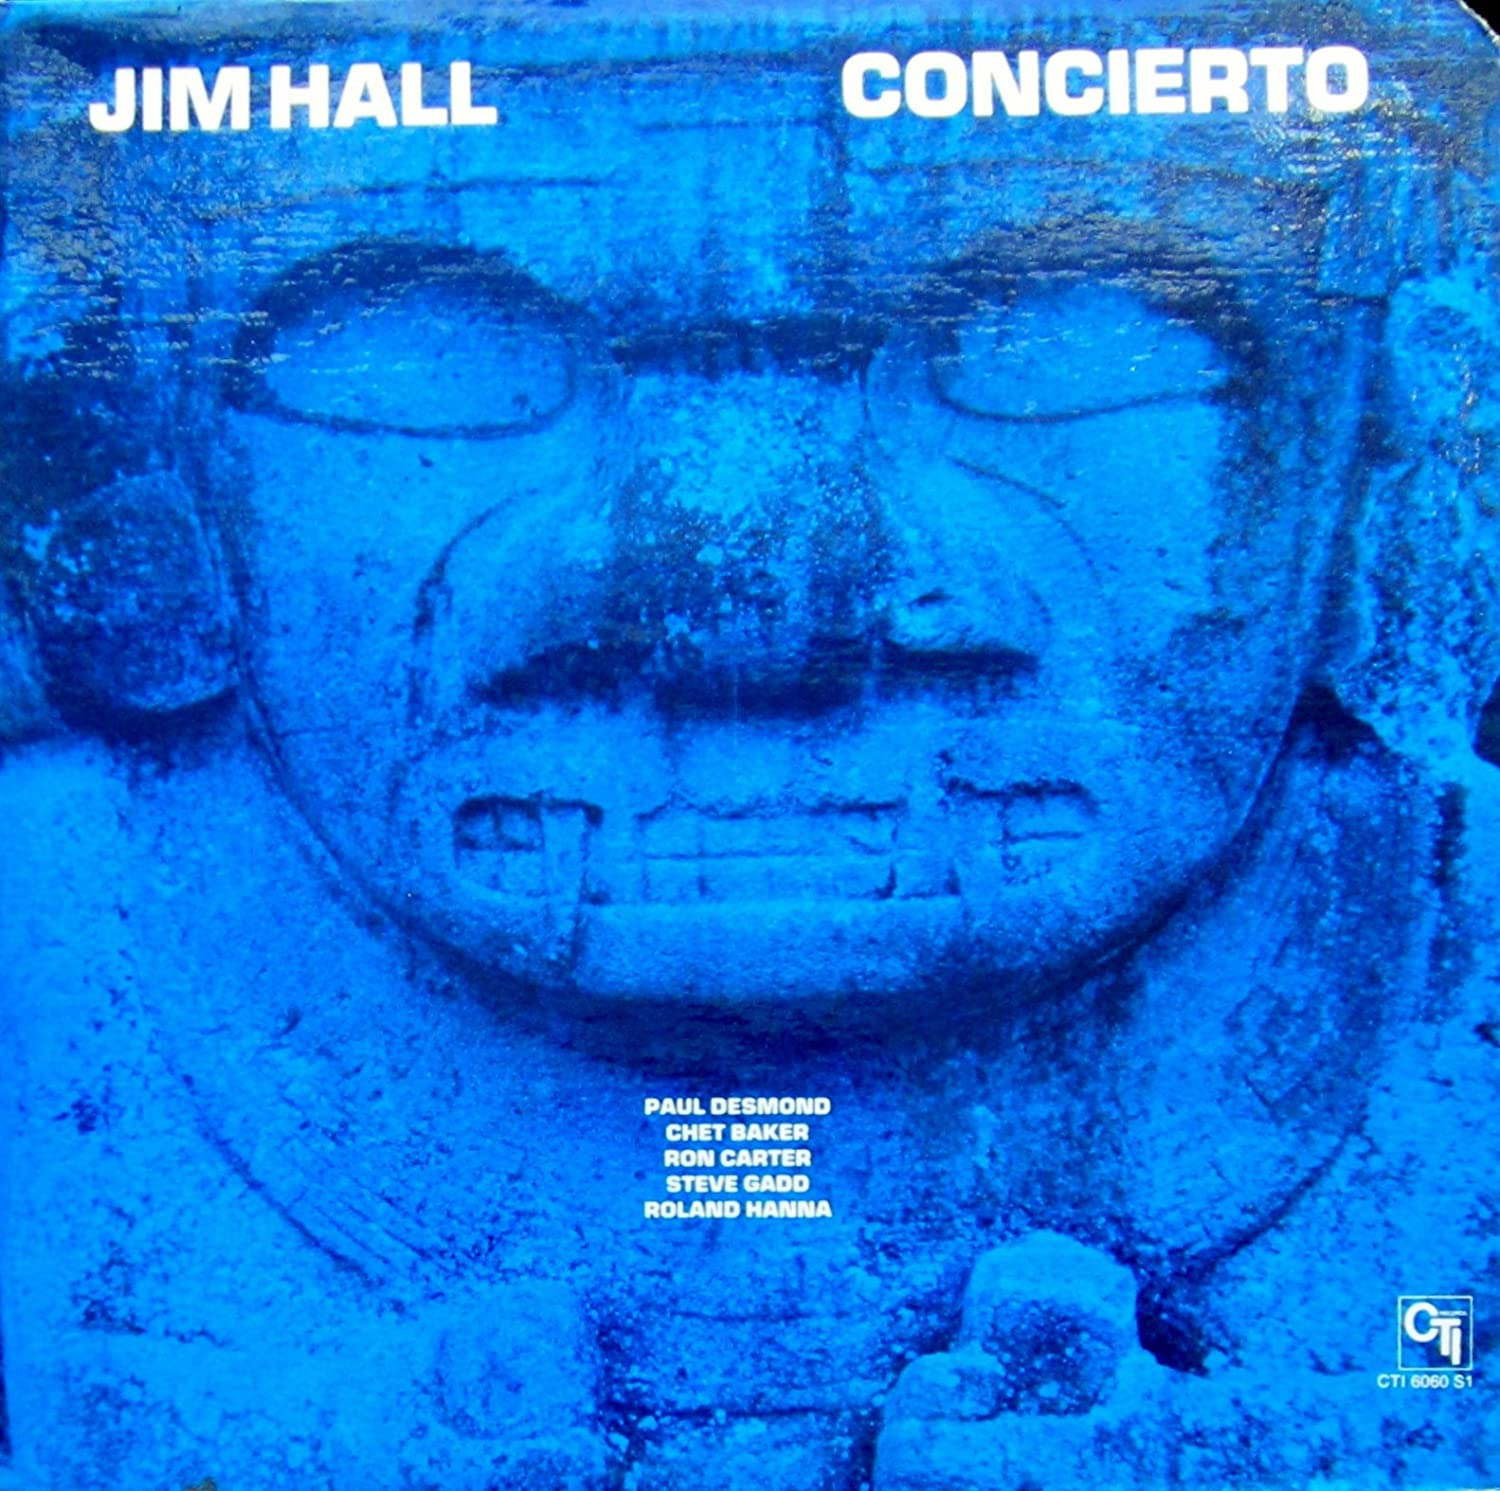 concierto LP: JIM HALL: Amazon.es: Música